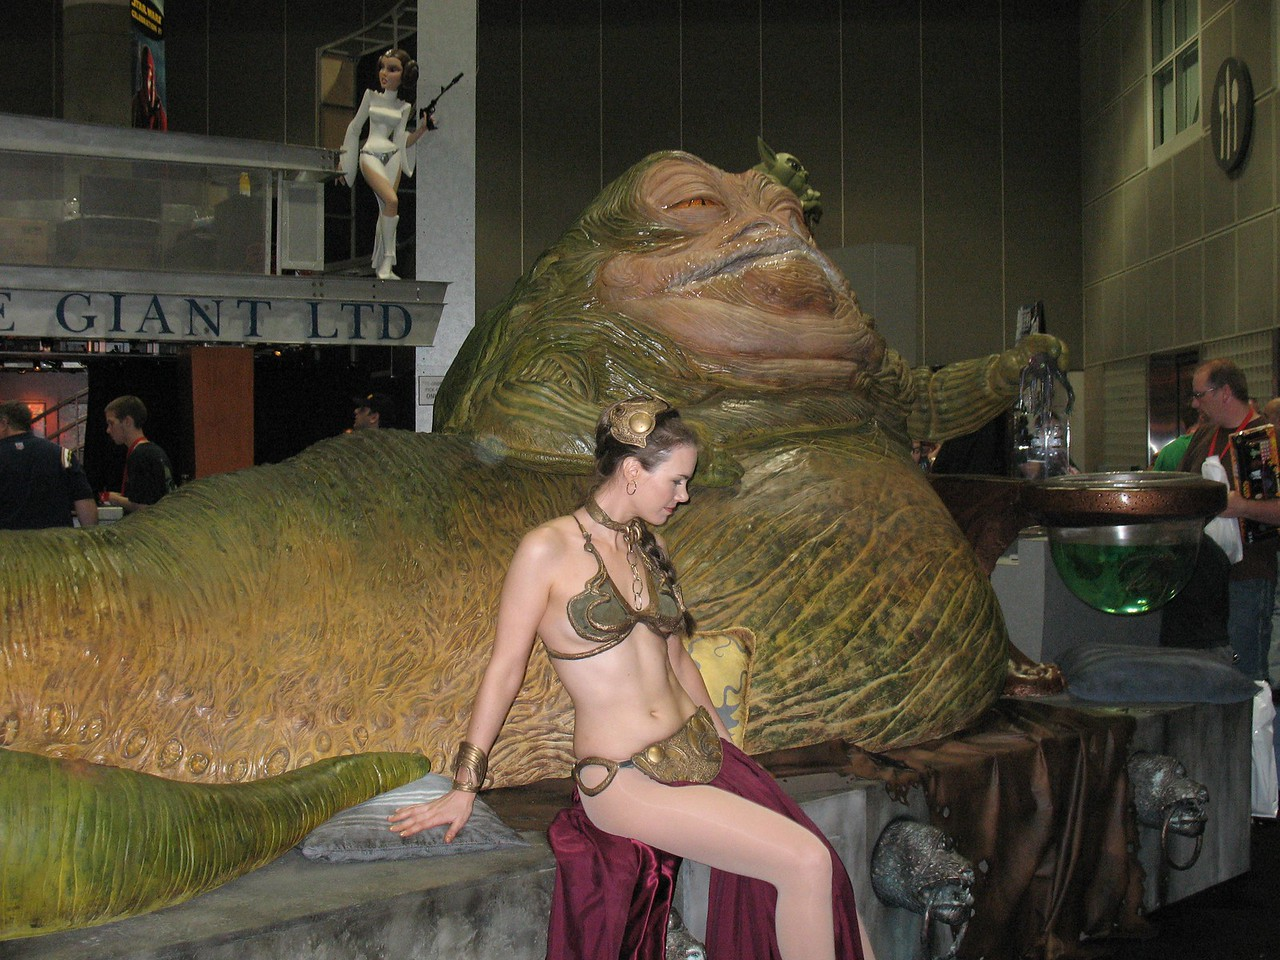 Jabba the Hut has captured Princess Leia at Celebration IV in Los Angeles, 2007